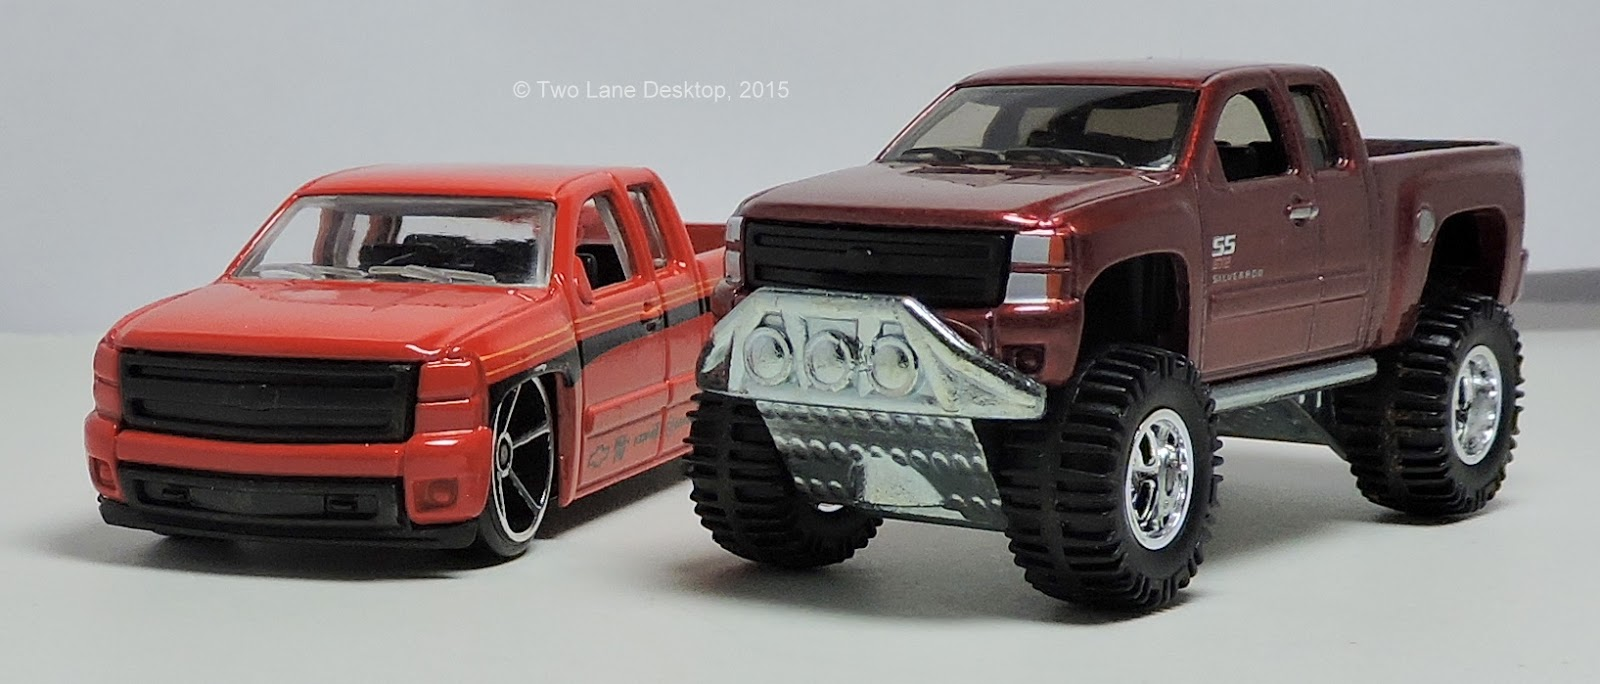 Hot Wheels 2007 Chevy Silverado In 2wd And 4x4 Two Lane Desktop 1961 Truck Lifted